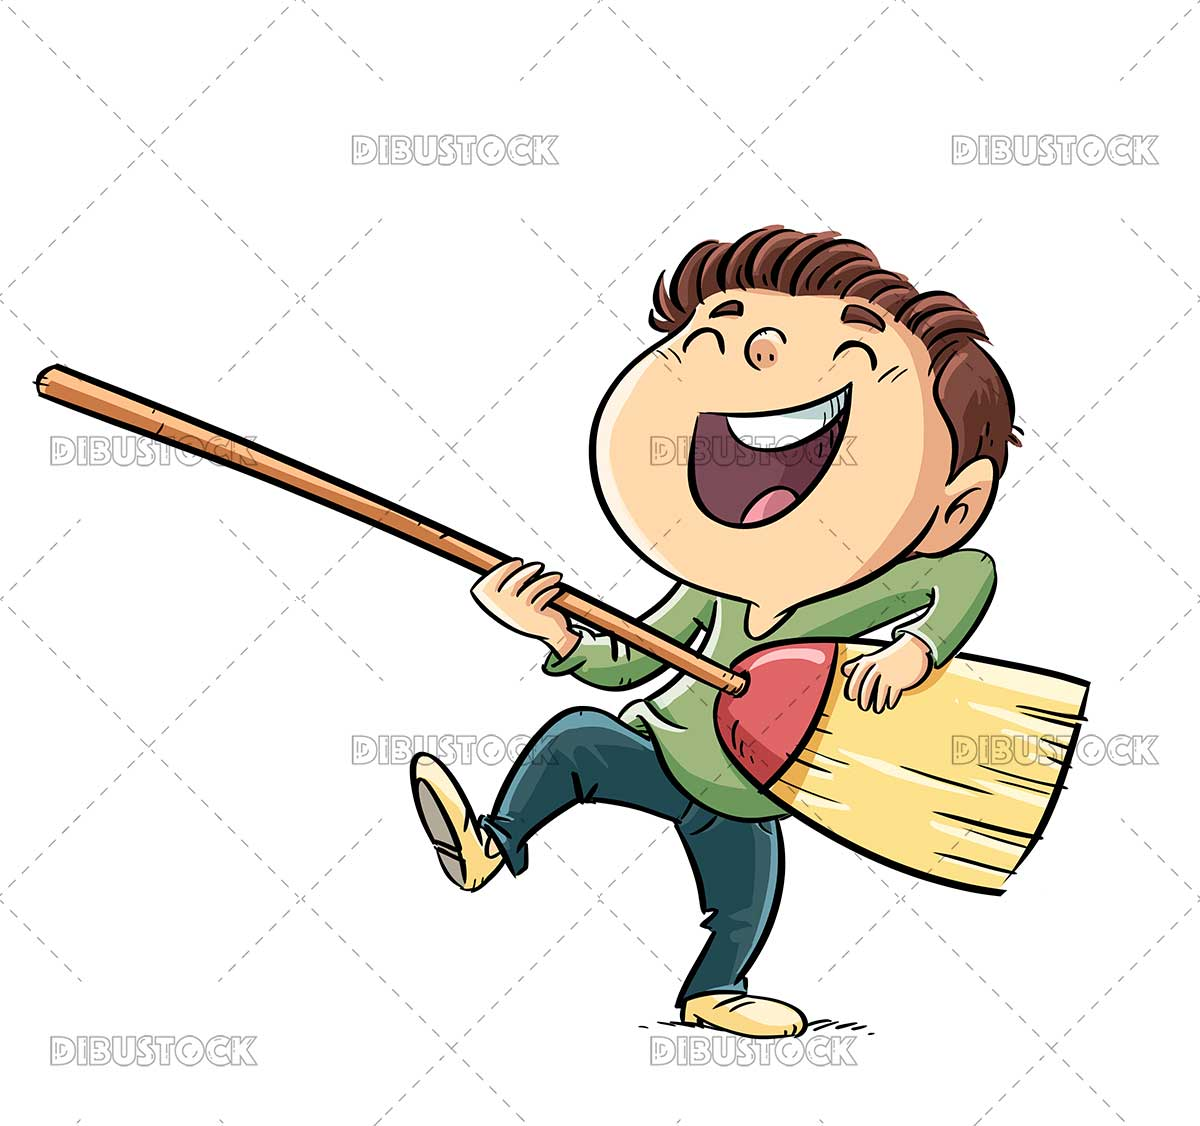 Illustration of a boy playing the broom like a guitar